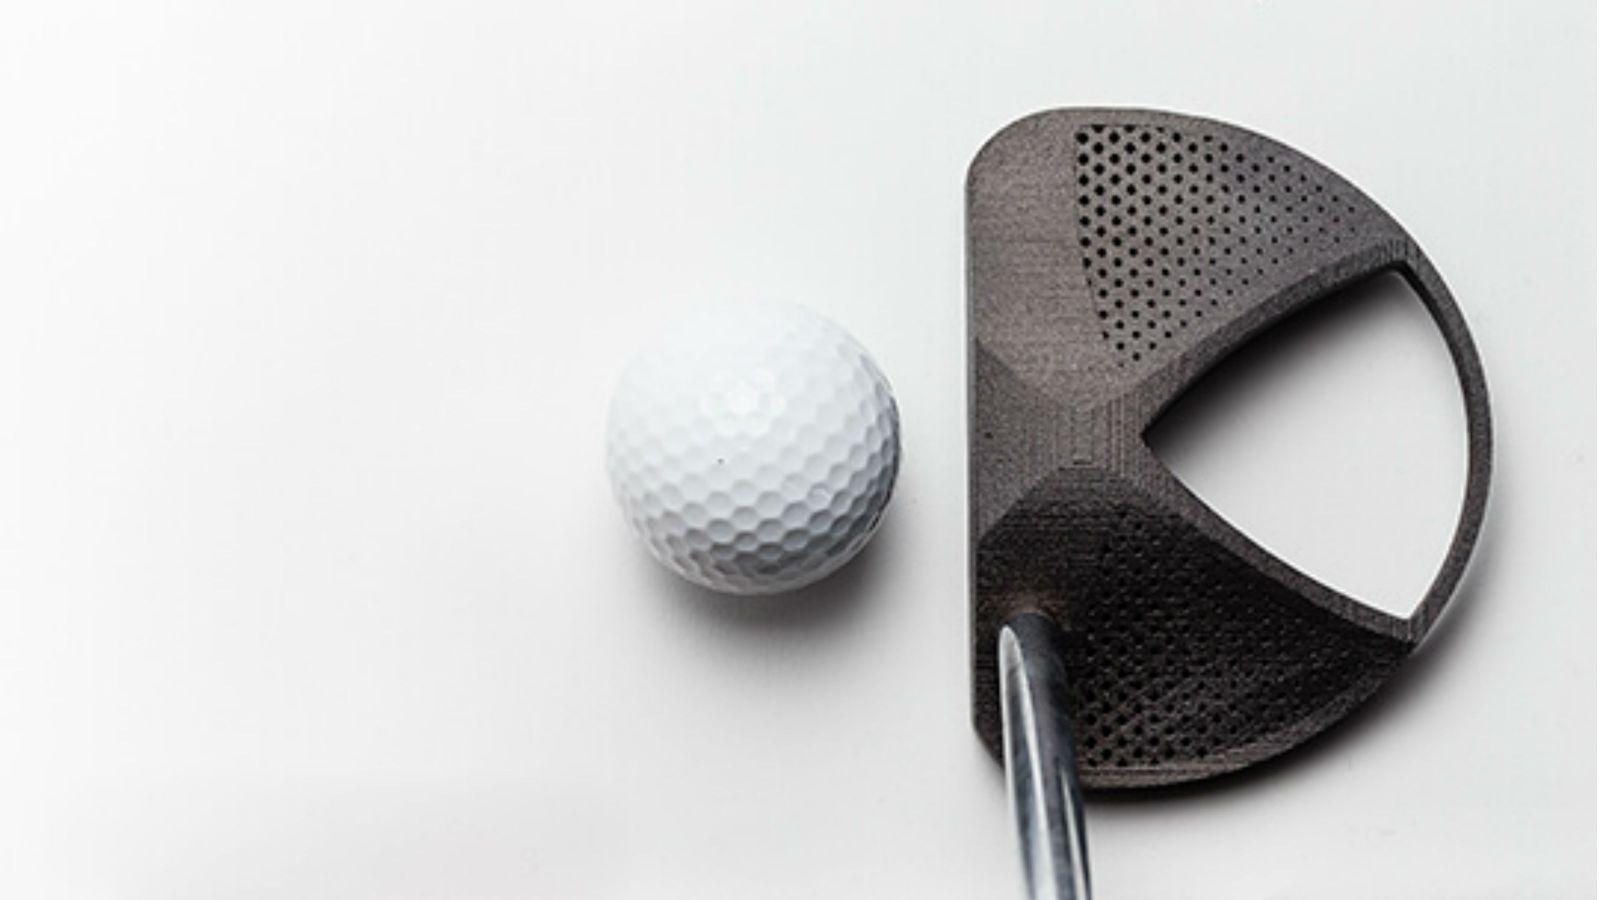 A photograph of the top of a golf ball and club.